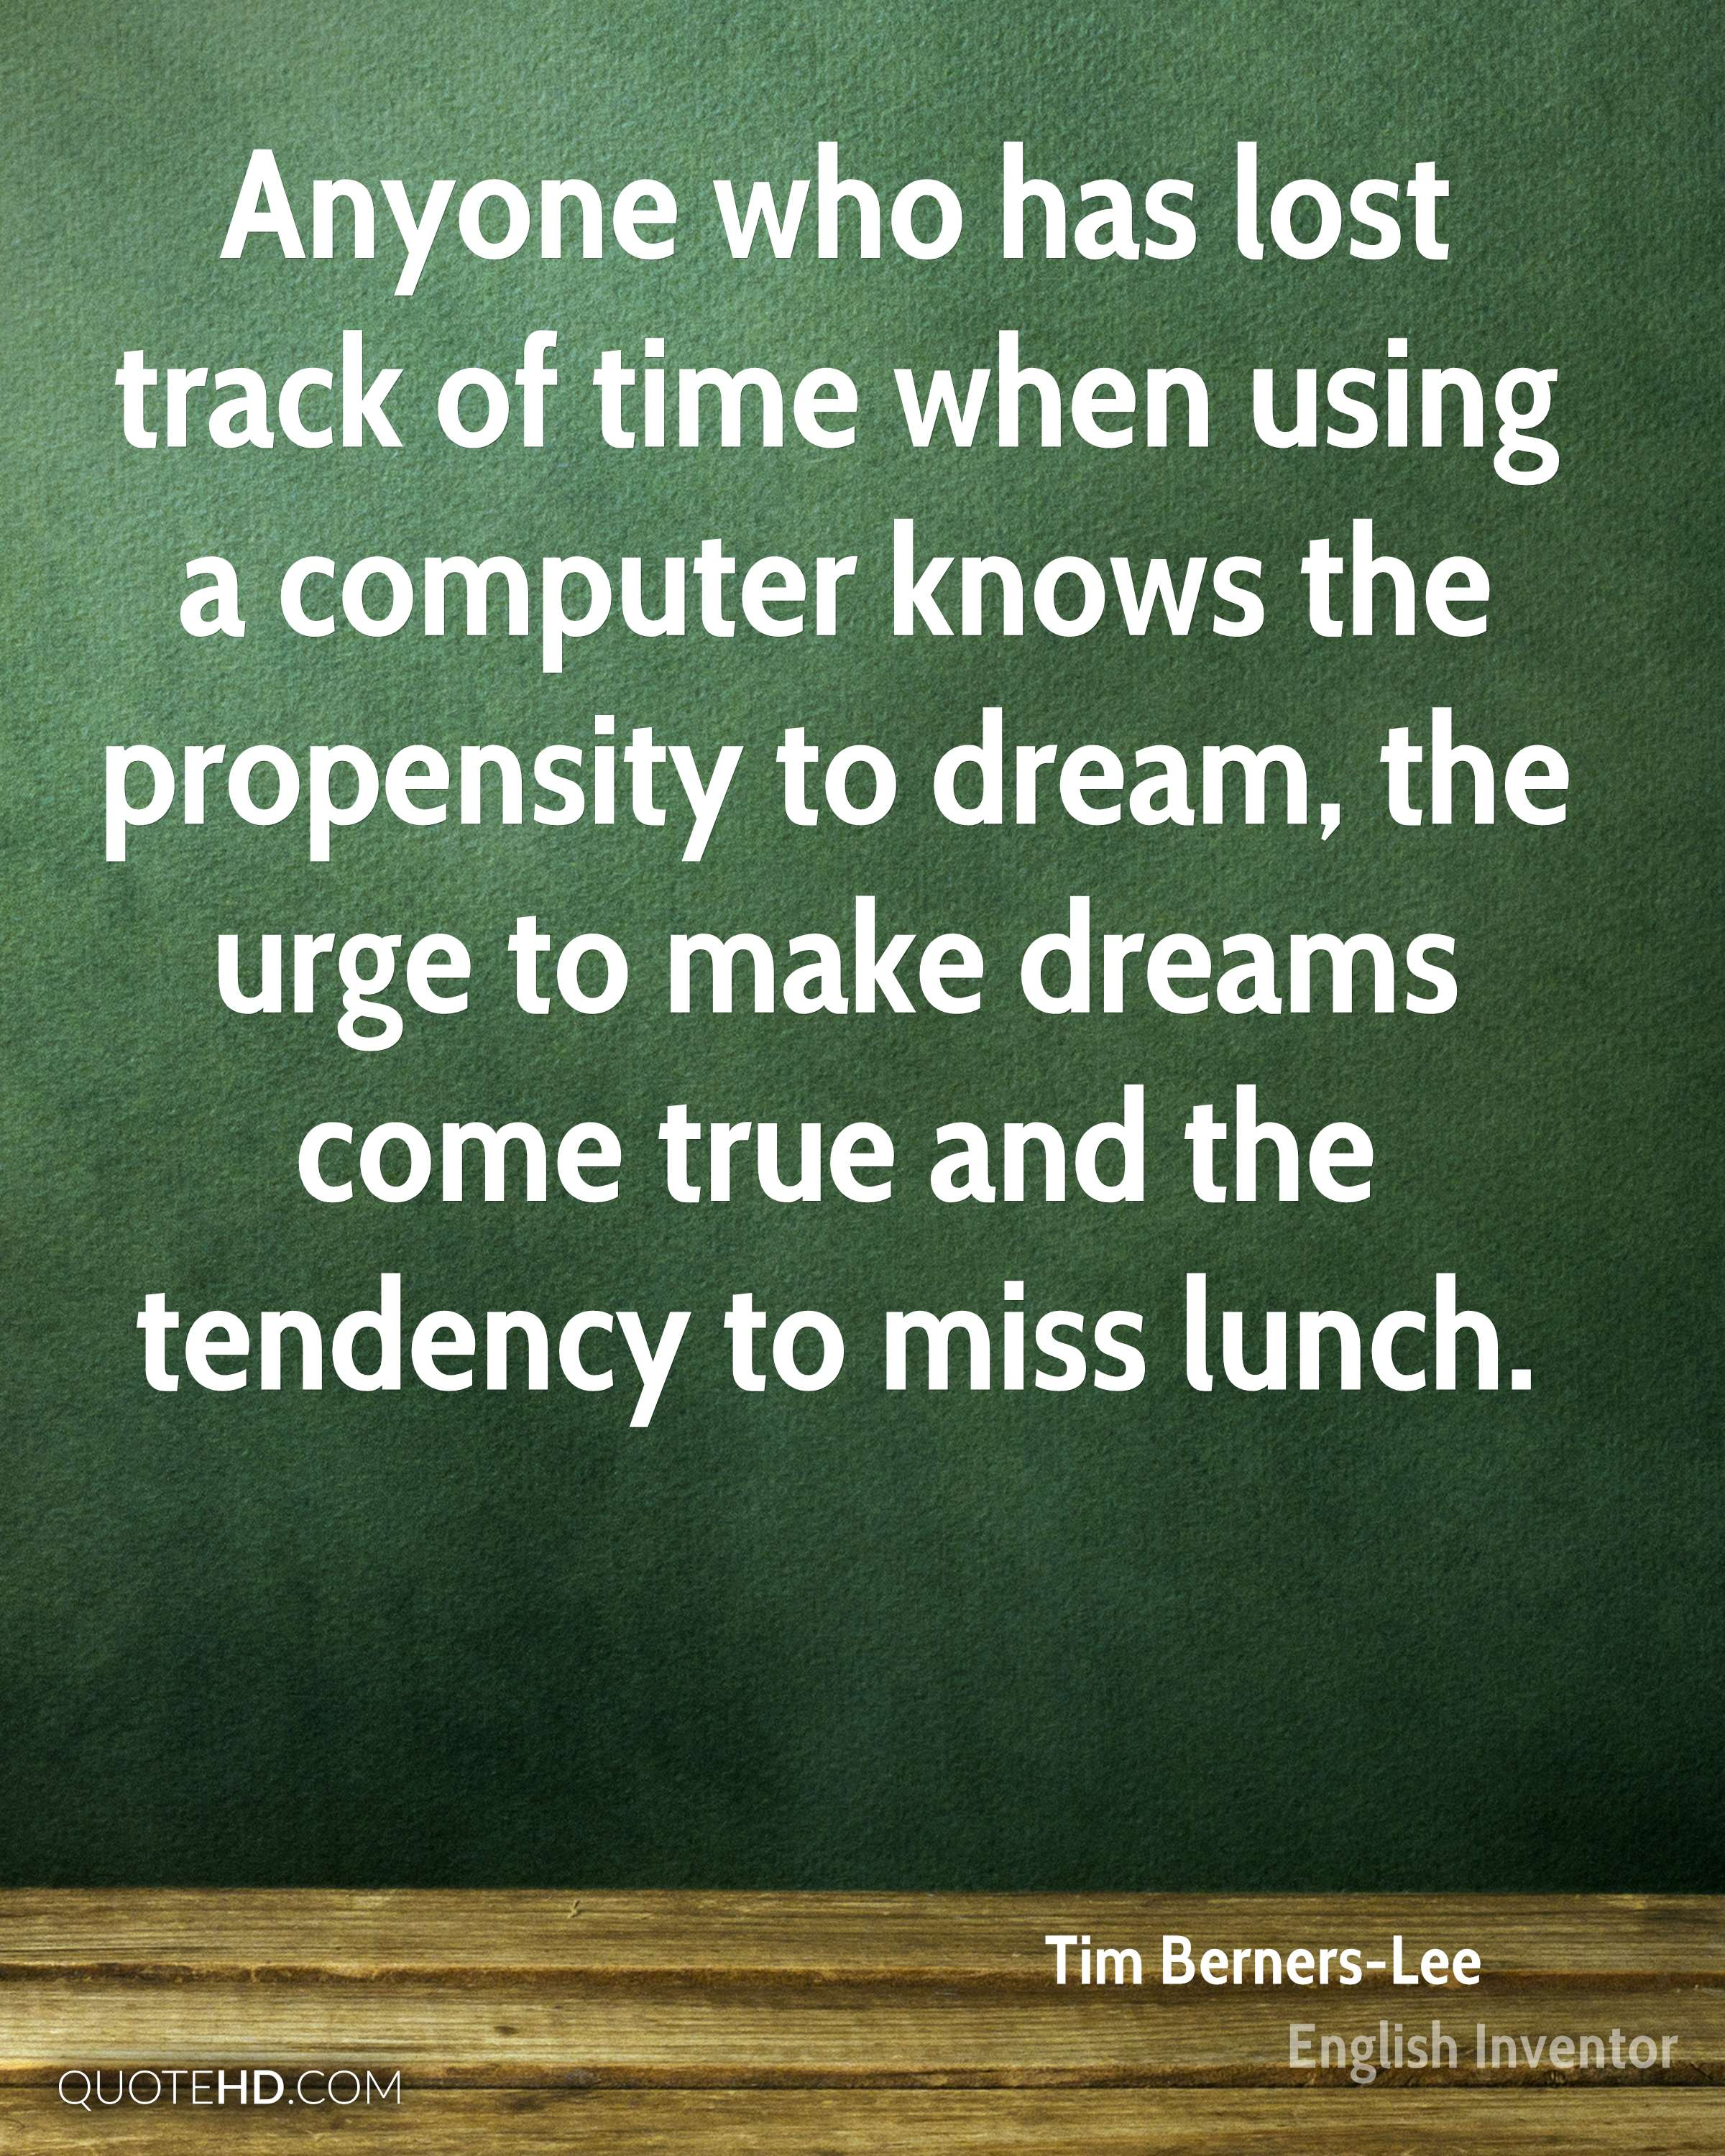 Anyone who has lost track of time when using a computer knows the propensity to dream, the urge to make dreams come true and the tendency to miss lunch.